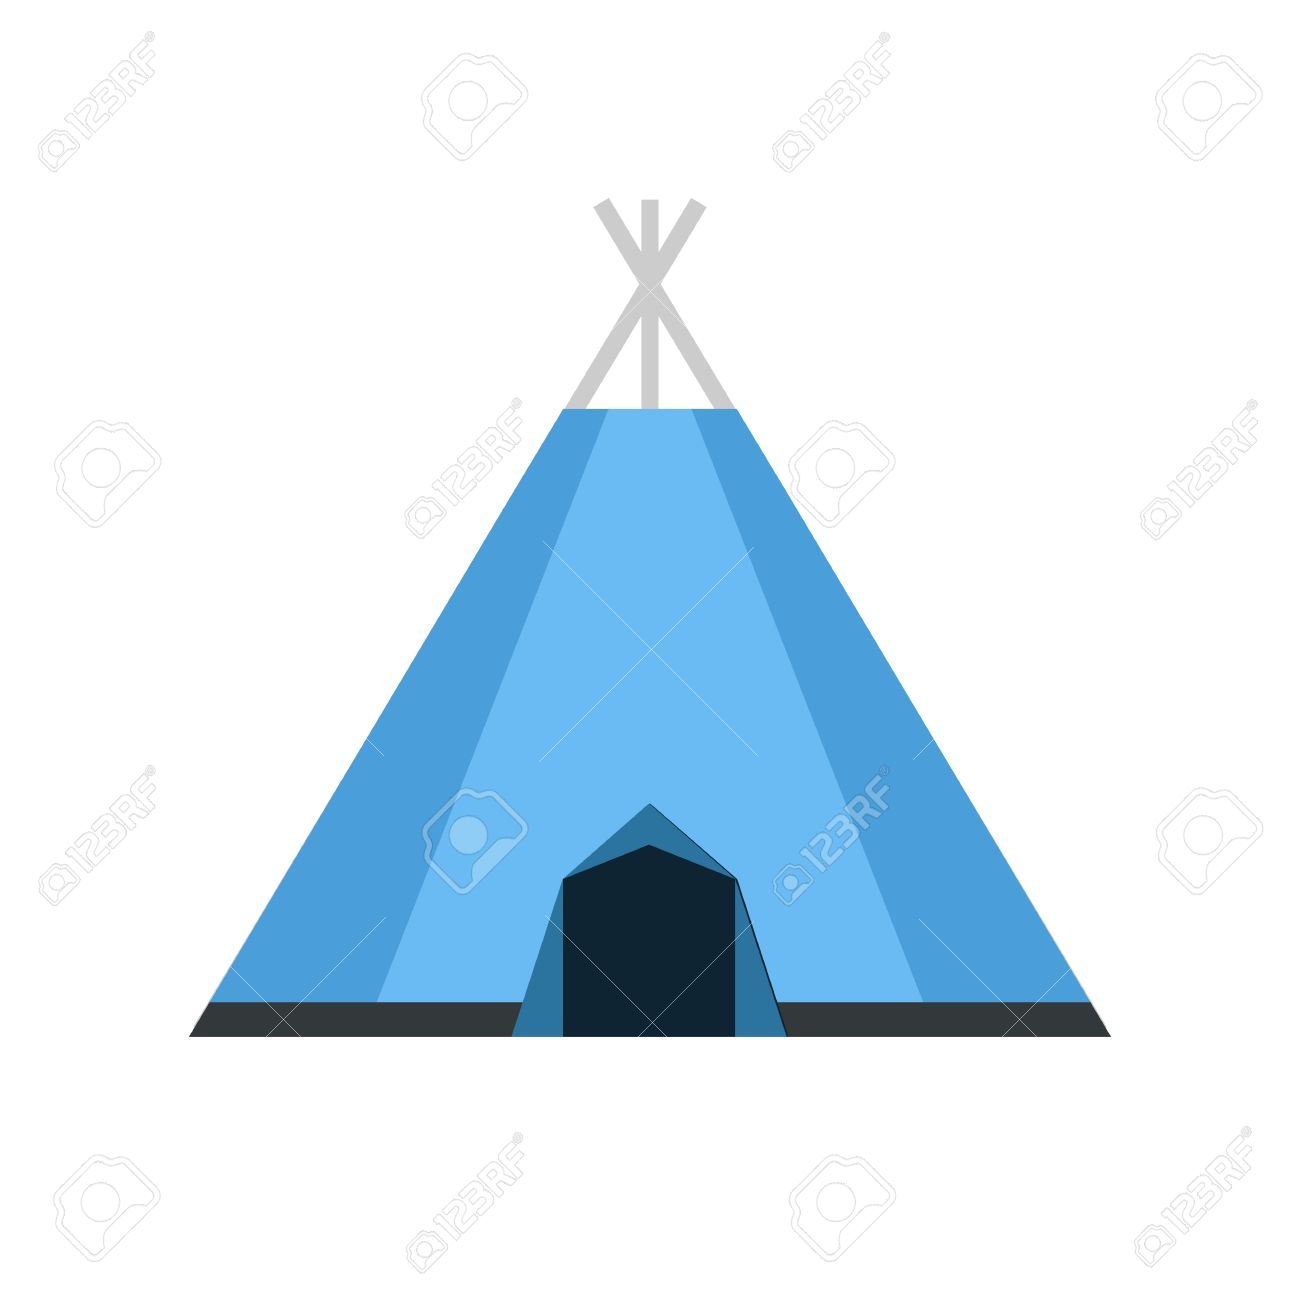 flat design tepee tourist hiking wigwam isolated on white background.